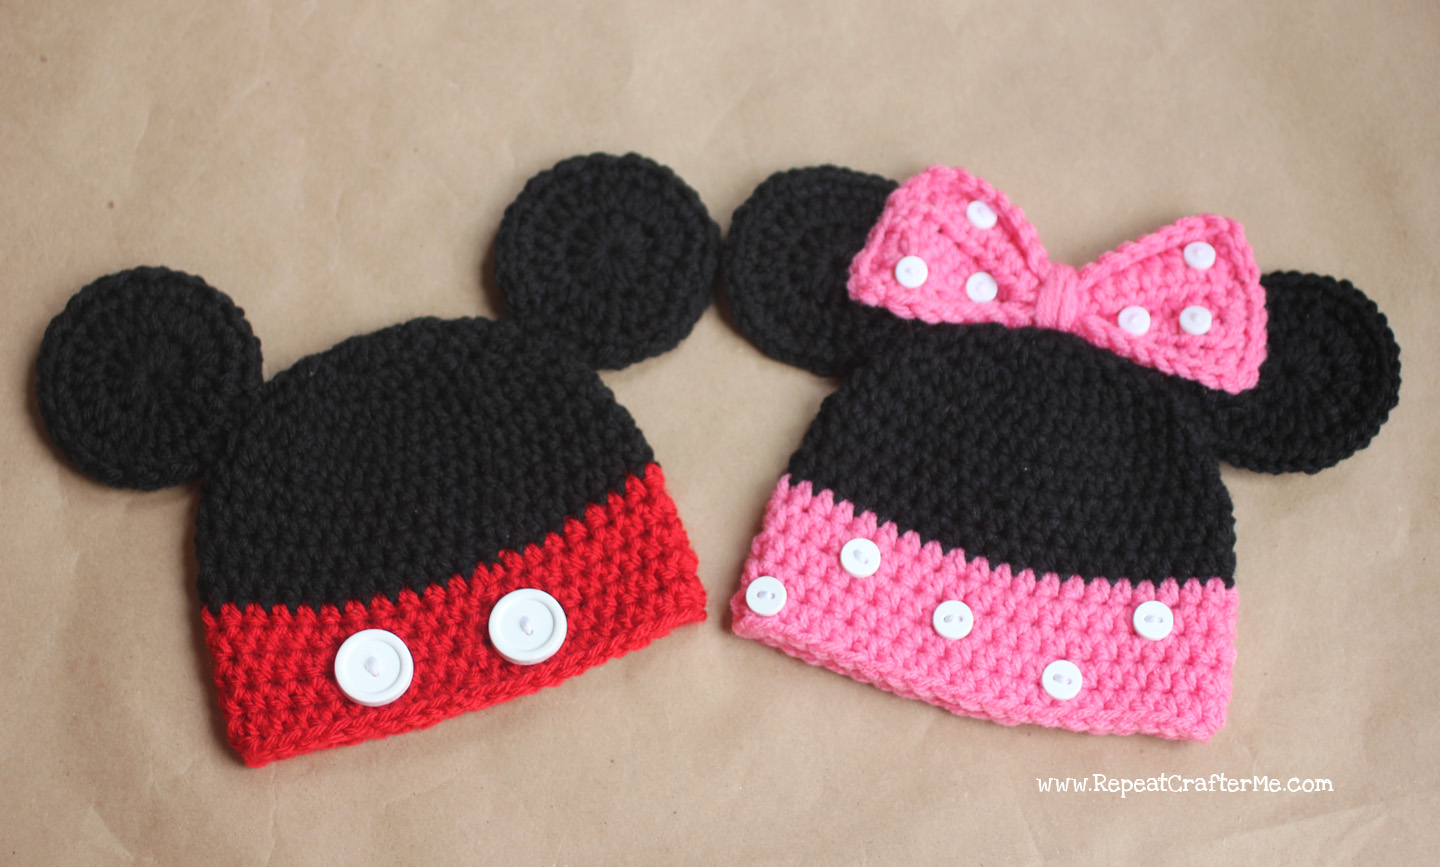 Crochet Ideas : Me Making Do: 10 Free Baby Crochet Patterns Roundup